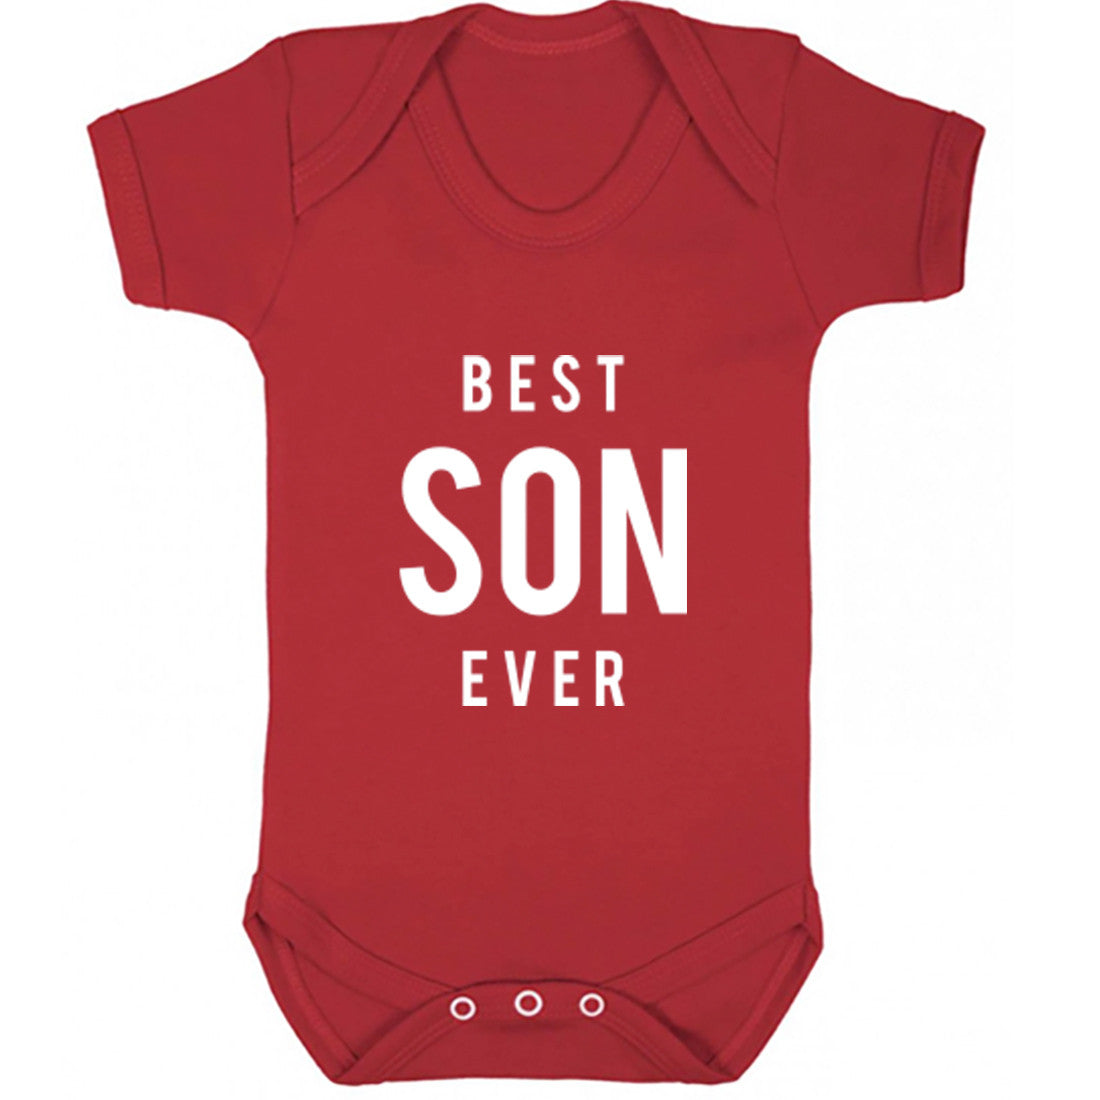 Best Son Ever Baby Vest K1460